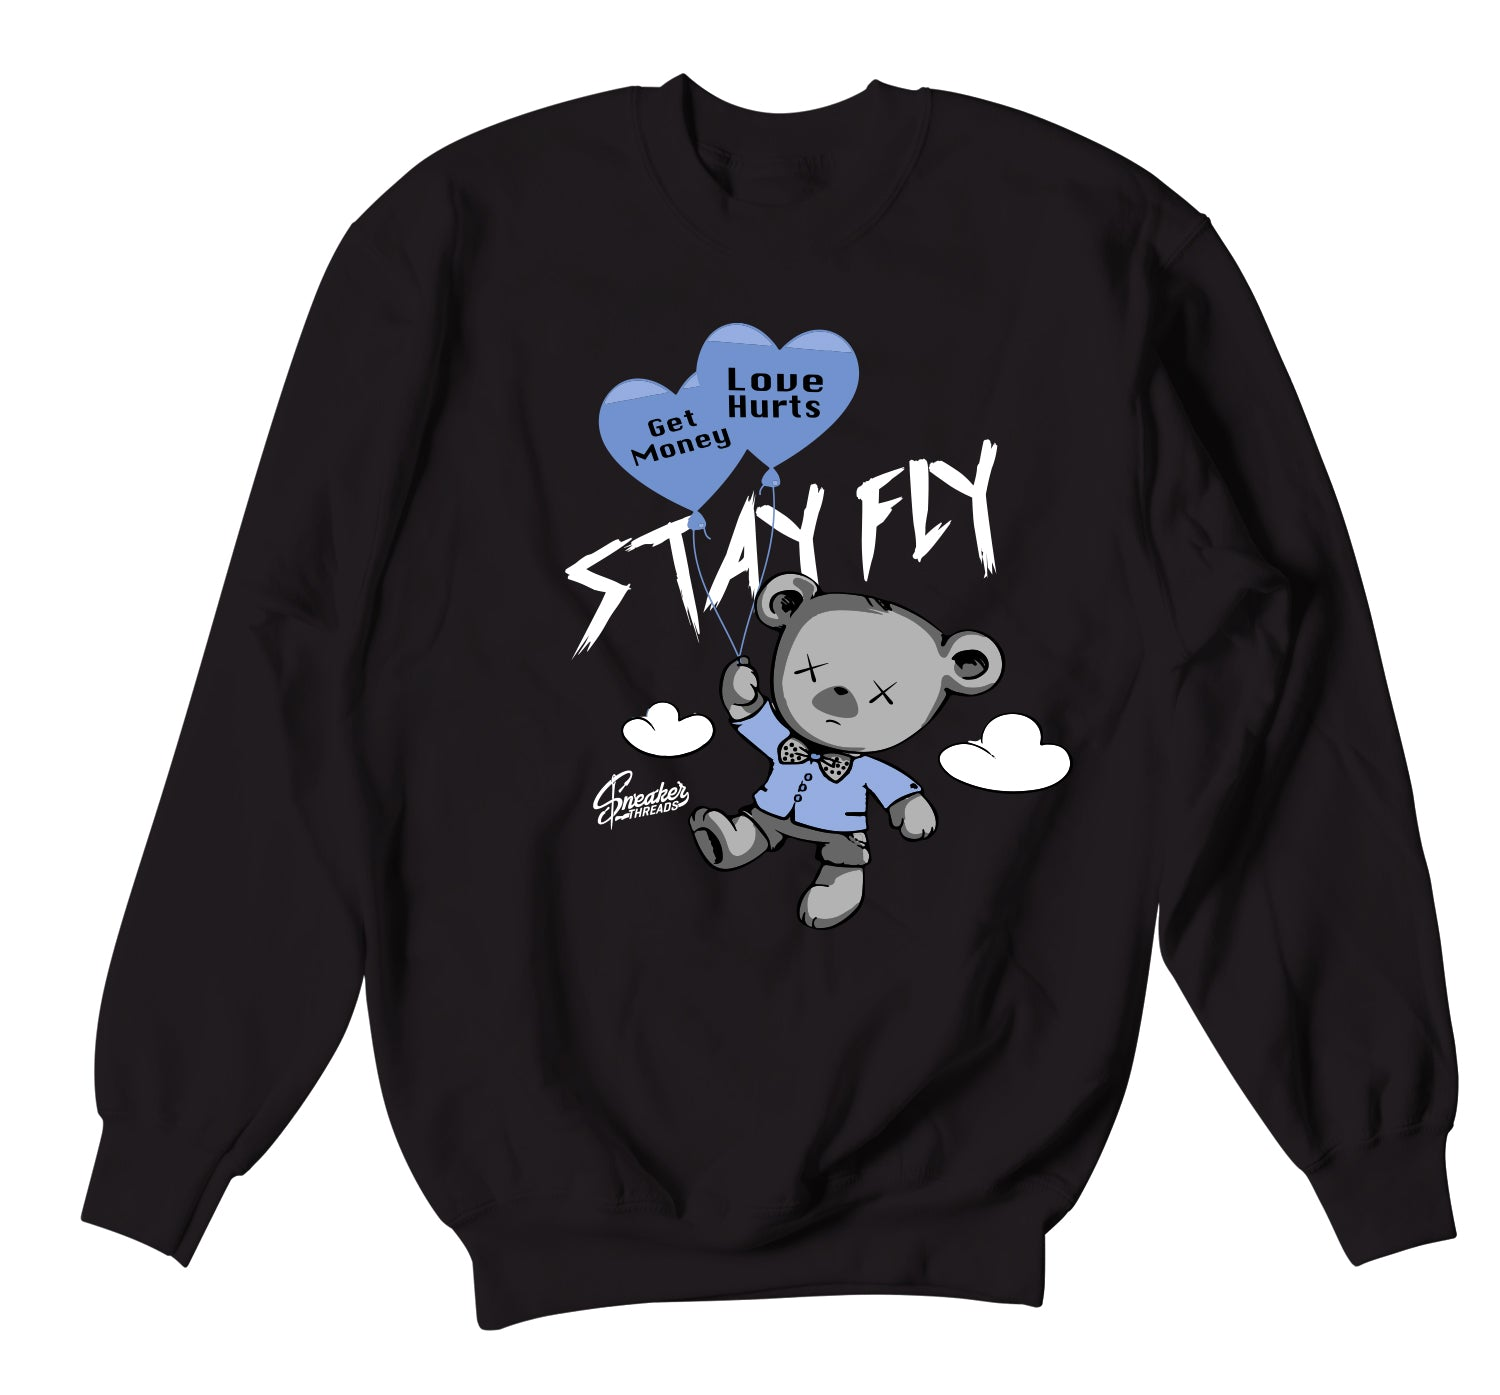 Jordan 3 UNC Sweater - Money Over Love - Black